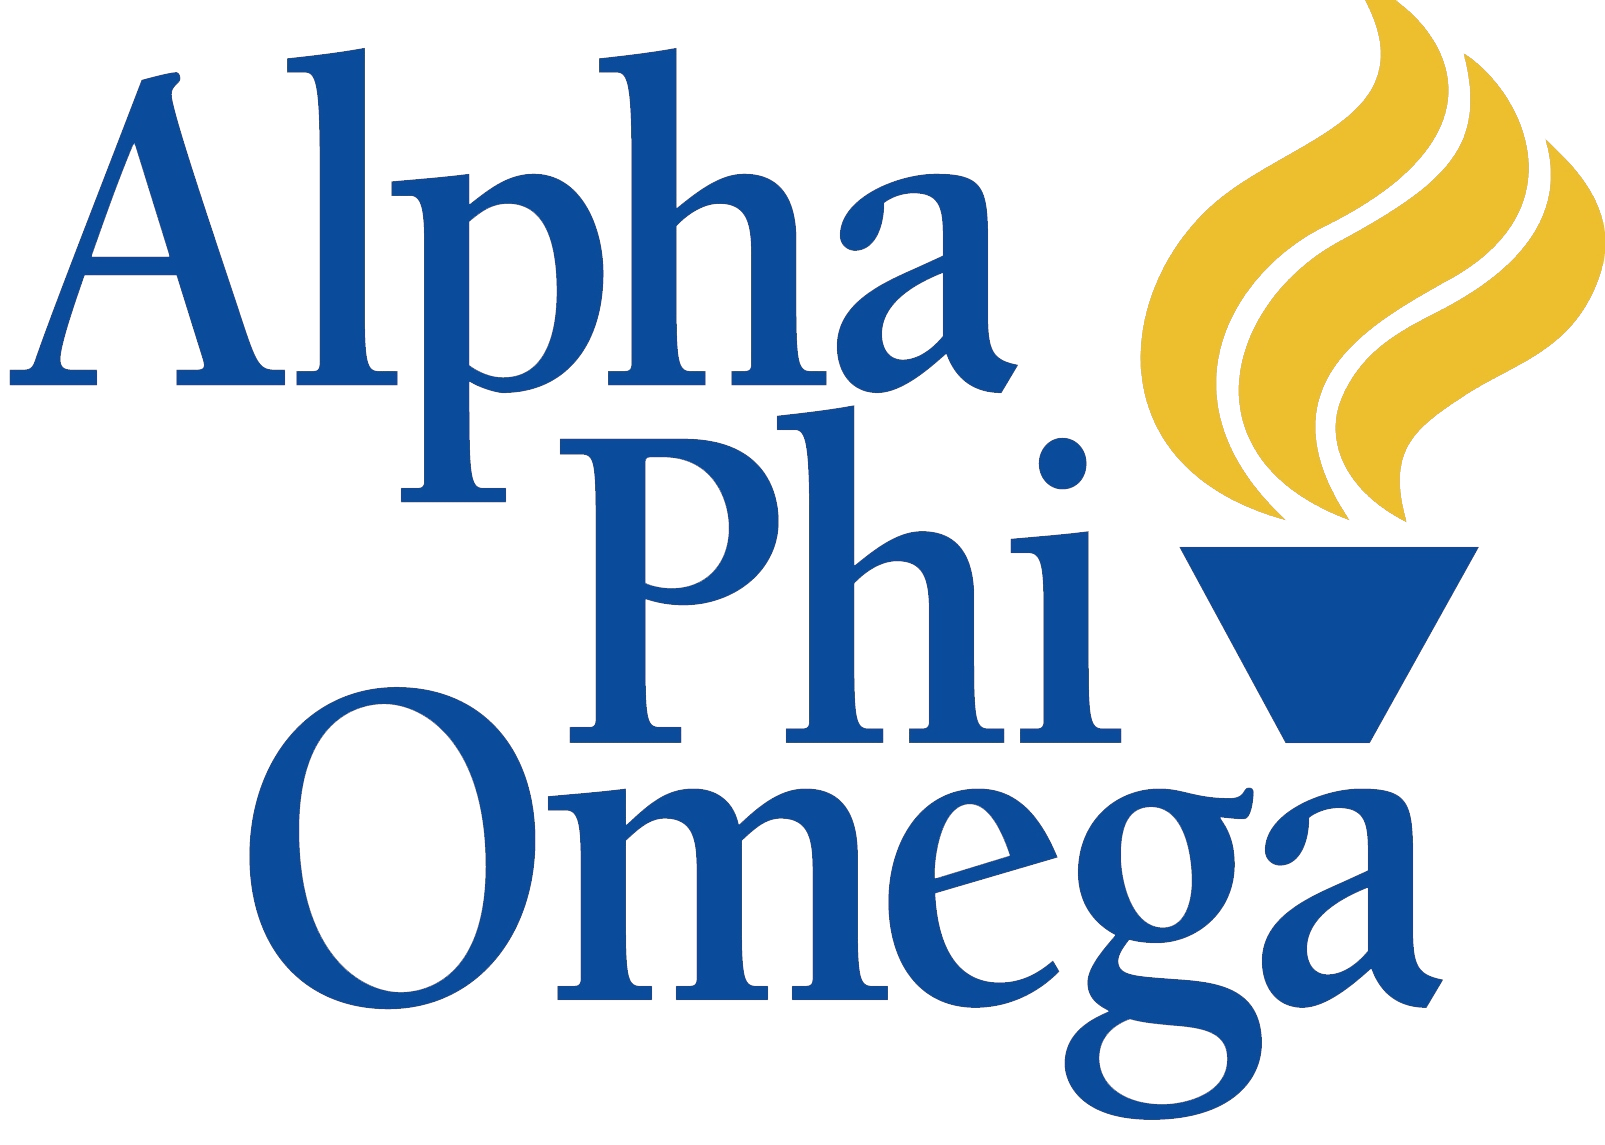 National Alpha Phi Omega